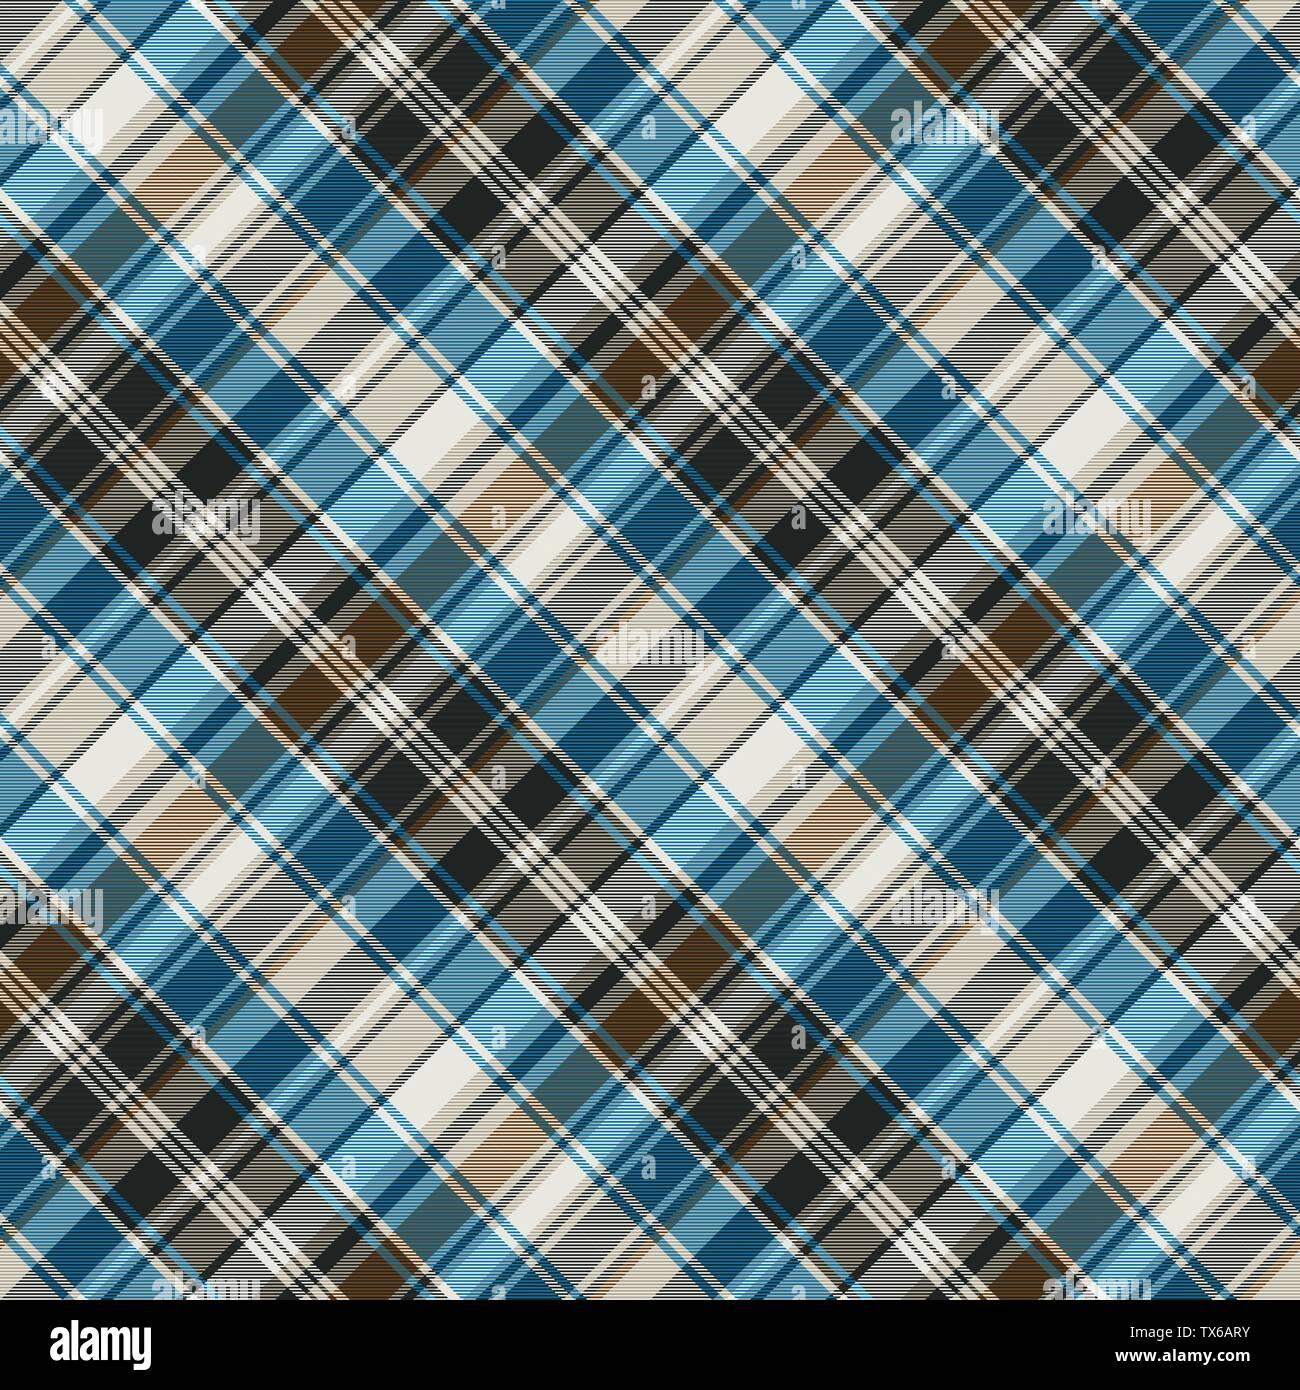 Striped check plaid seamless pattern. Vector illustration. - Stock Vector